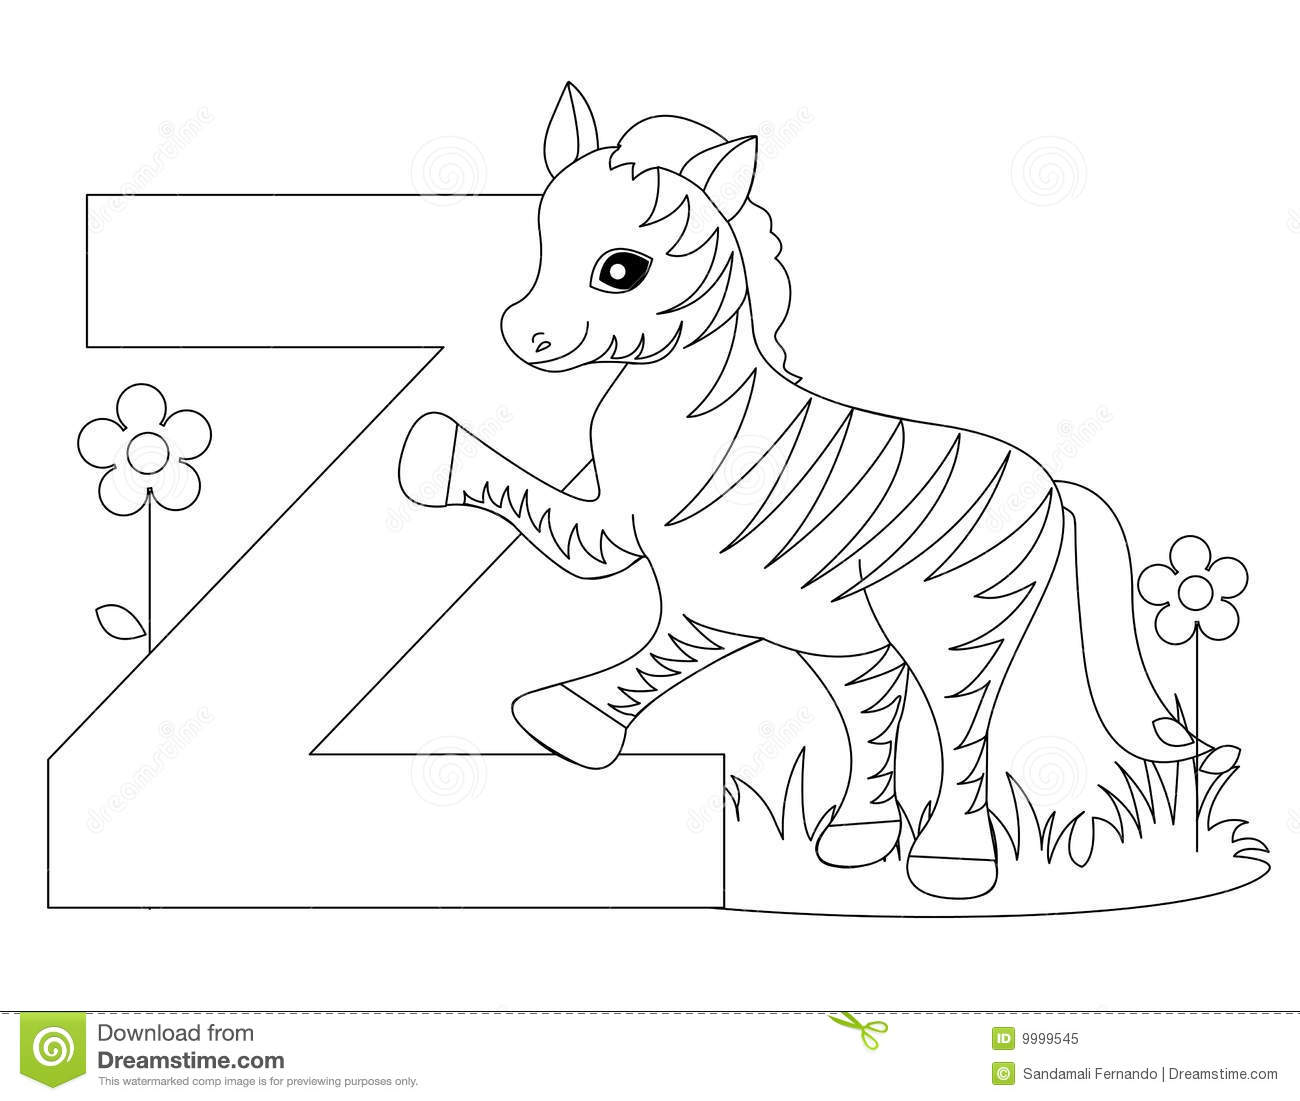 Animal alphabet z coloring page stock vector for Animal alphabet coloring pages free